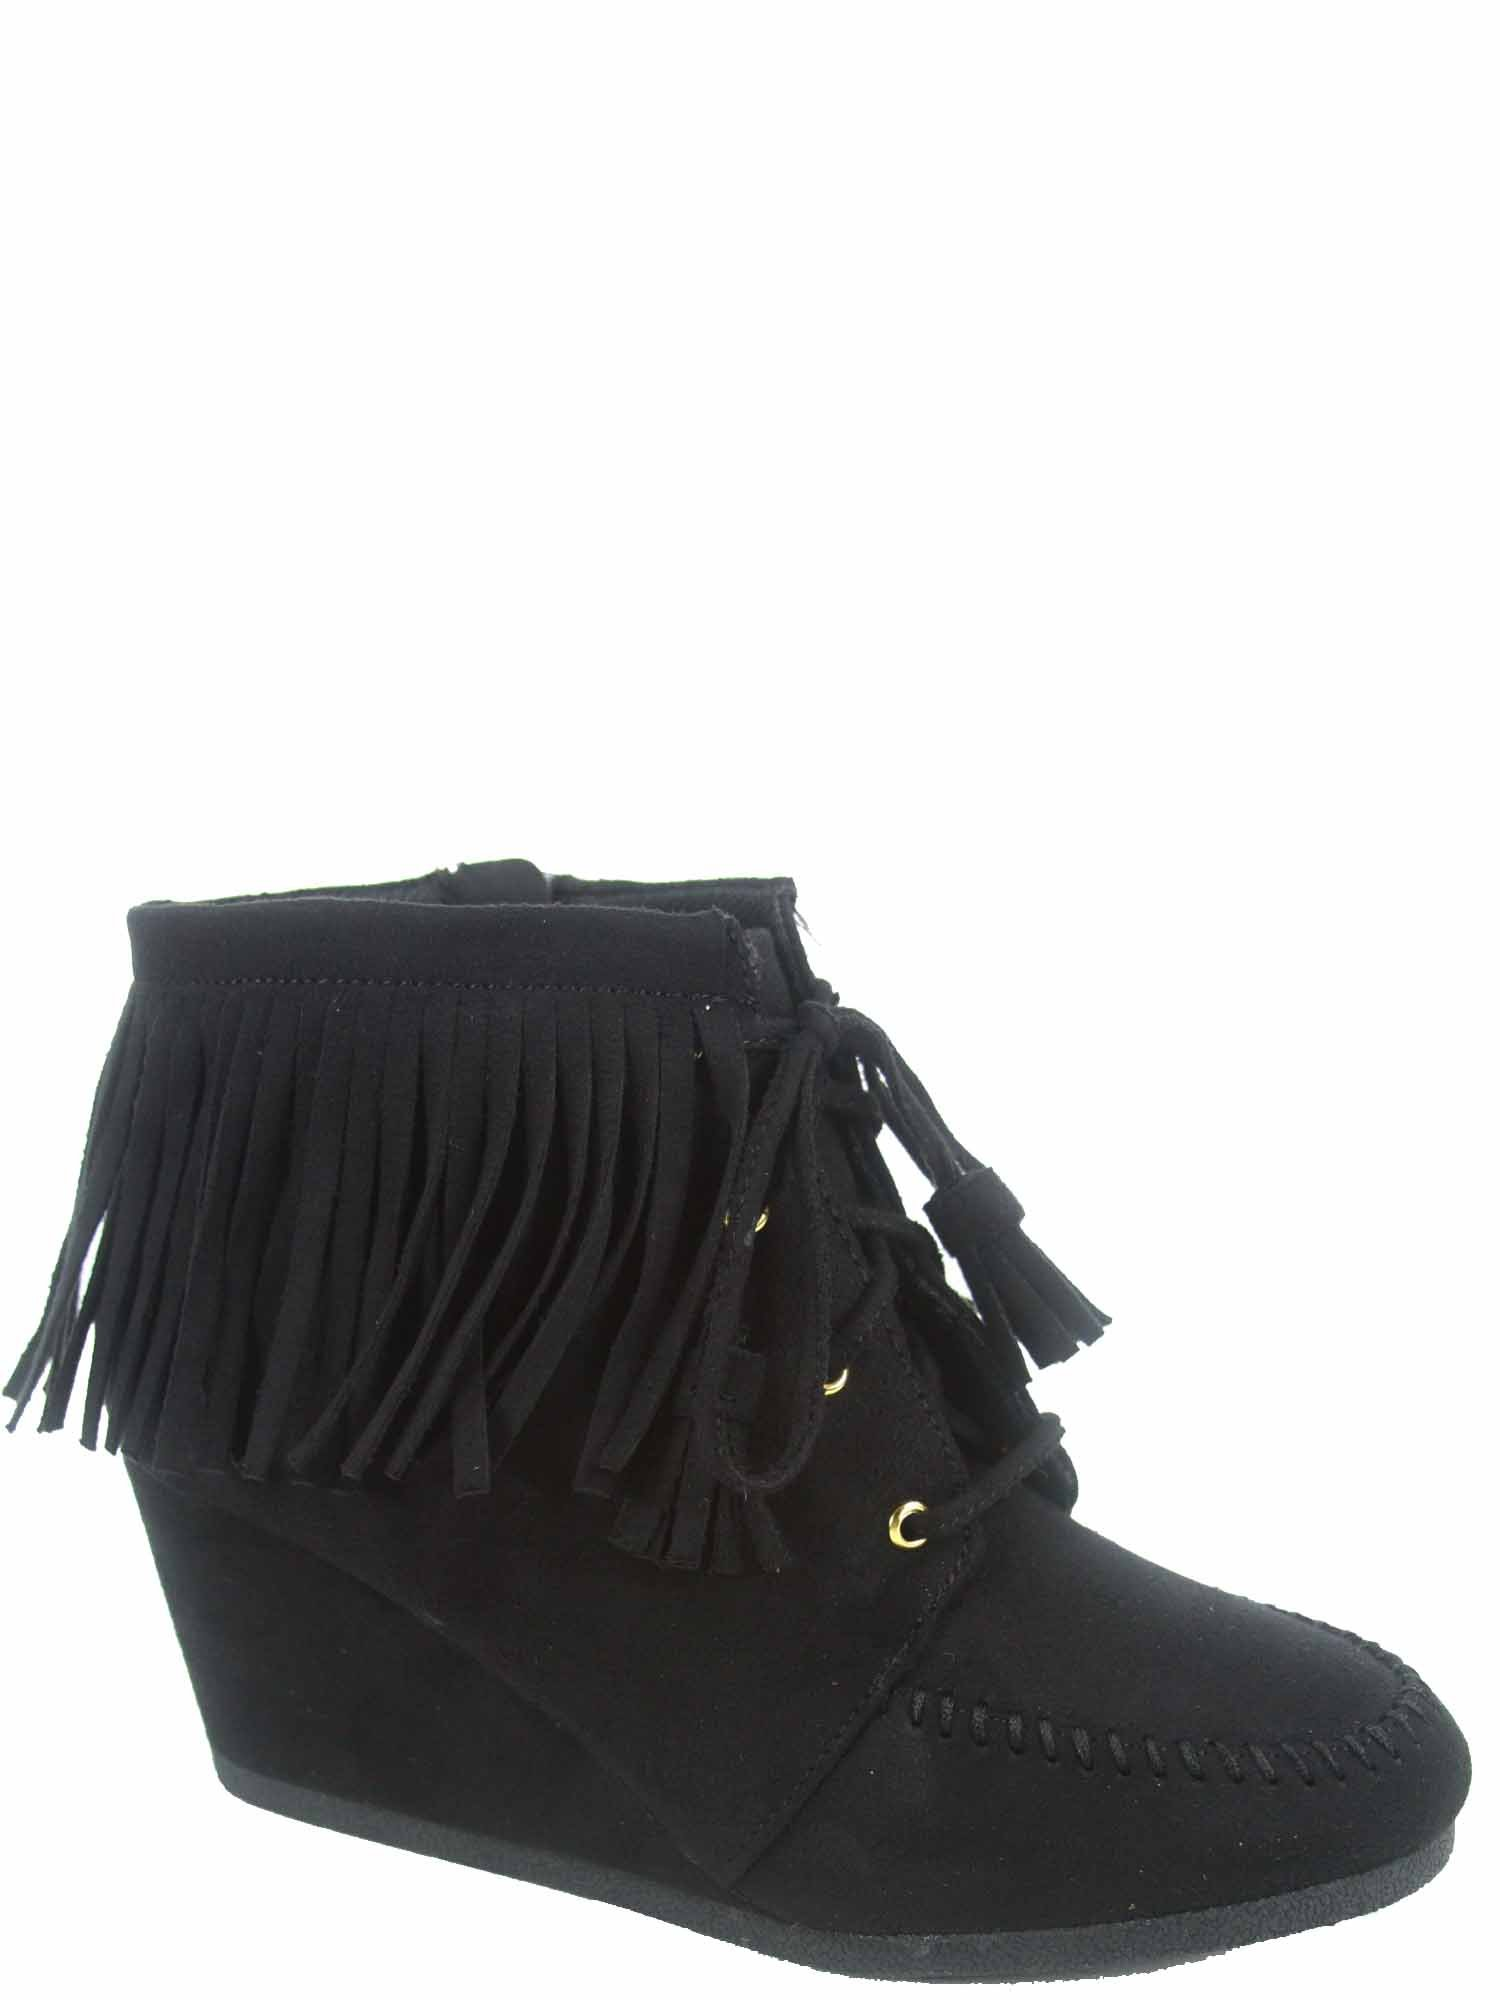 Cityclassfied Wig-s Women's Cute Low Wedge Lace up Zipper Fringe Oxford Booties Shoes (9 B(M) US, Black)